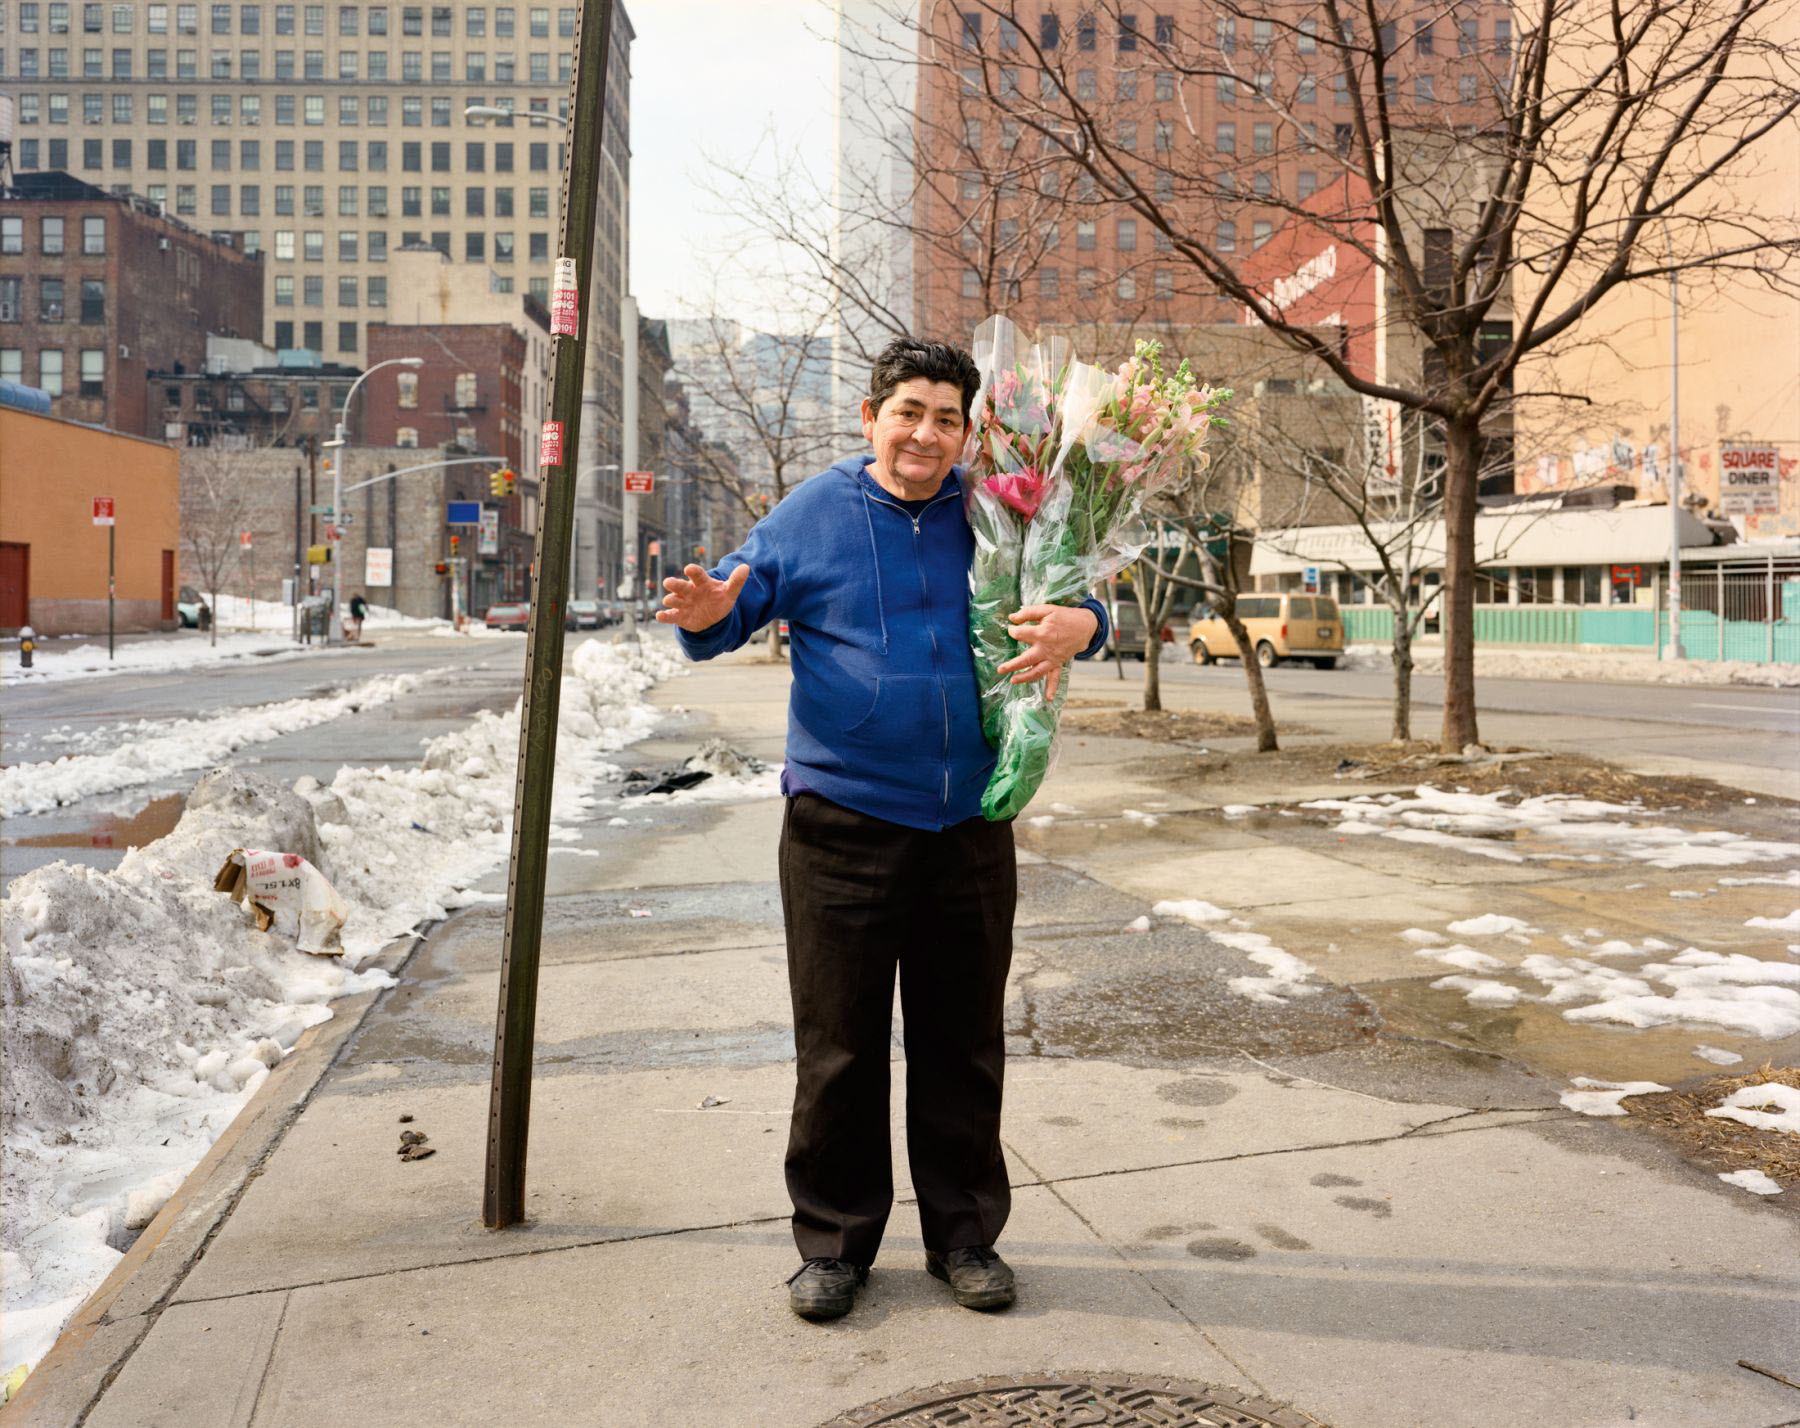 A Man Delivering Flowers, New York, New York, March 1994